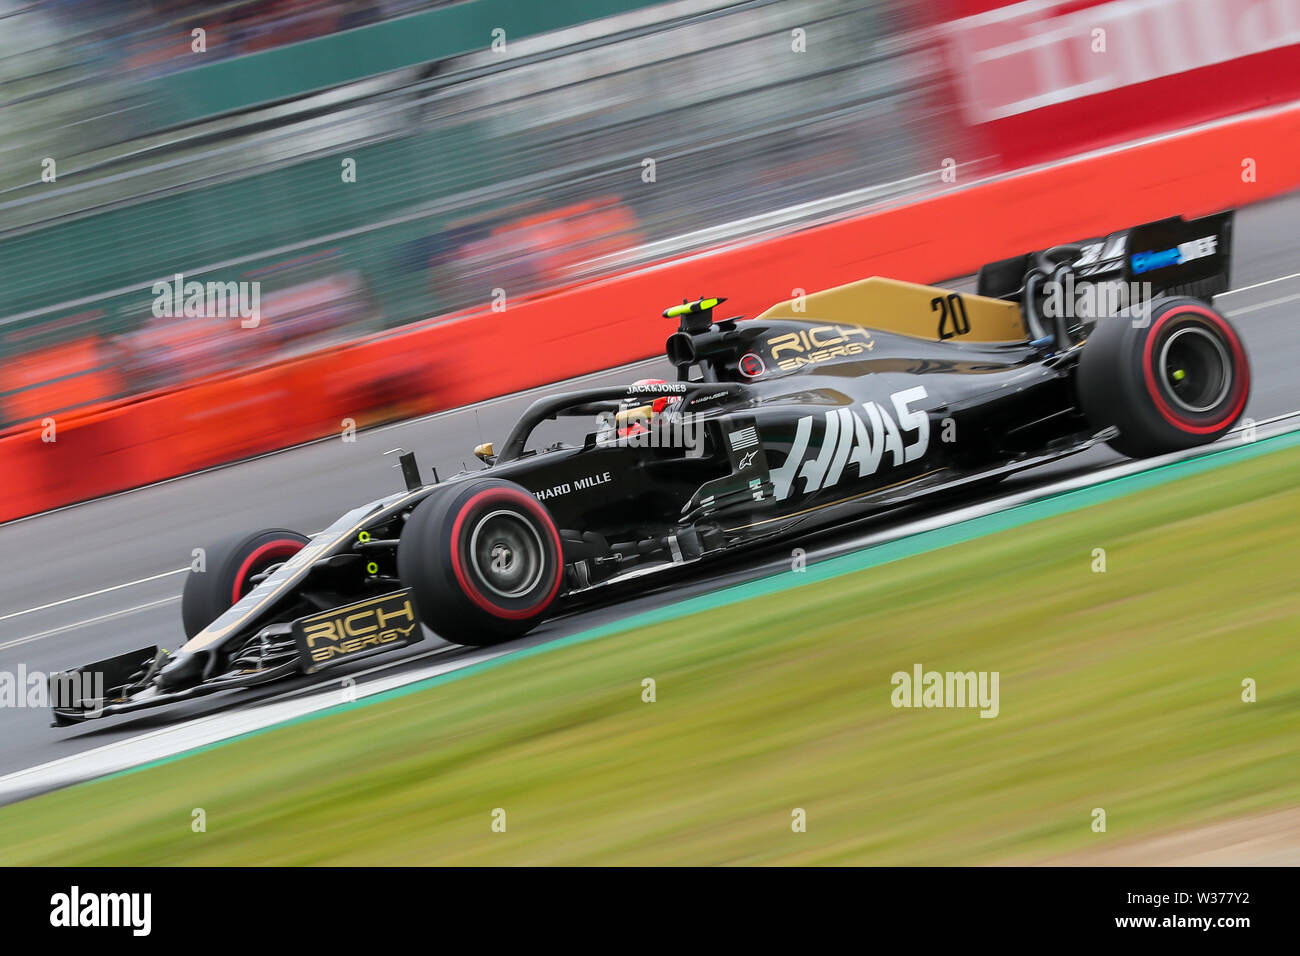 Silverstone Circuit. Northampton, UK. 13th July, 2019. FIA Formula 1 Grand Prix of Britain, Qualification Day; Kevin Magnussen driving his Rich Energy Haas F1 Team VF-19 Credit: Action Plus Sports/Alamy Live News Stock Photo